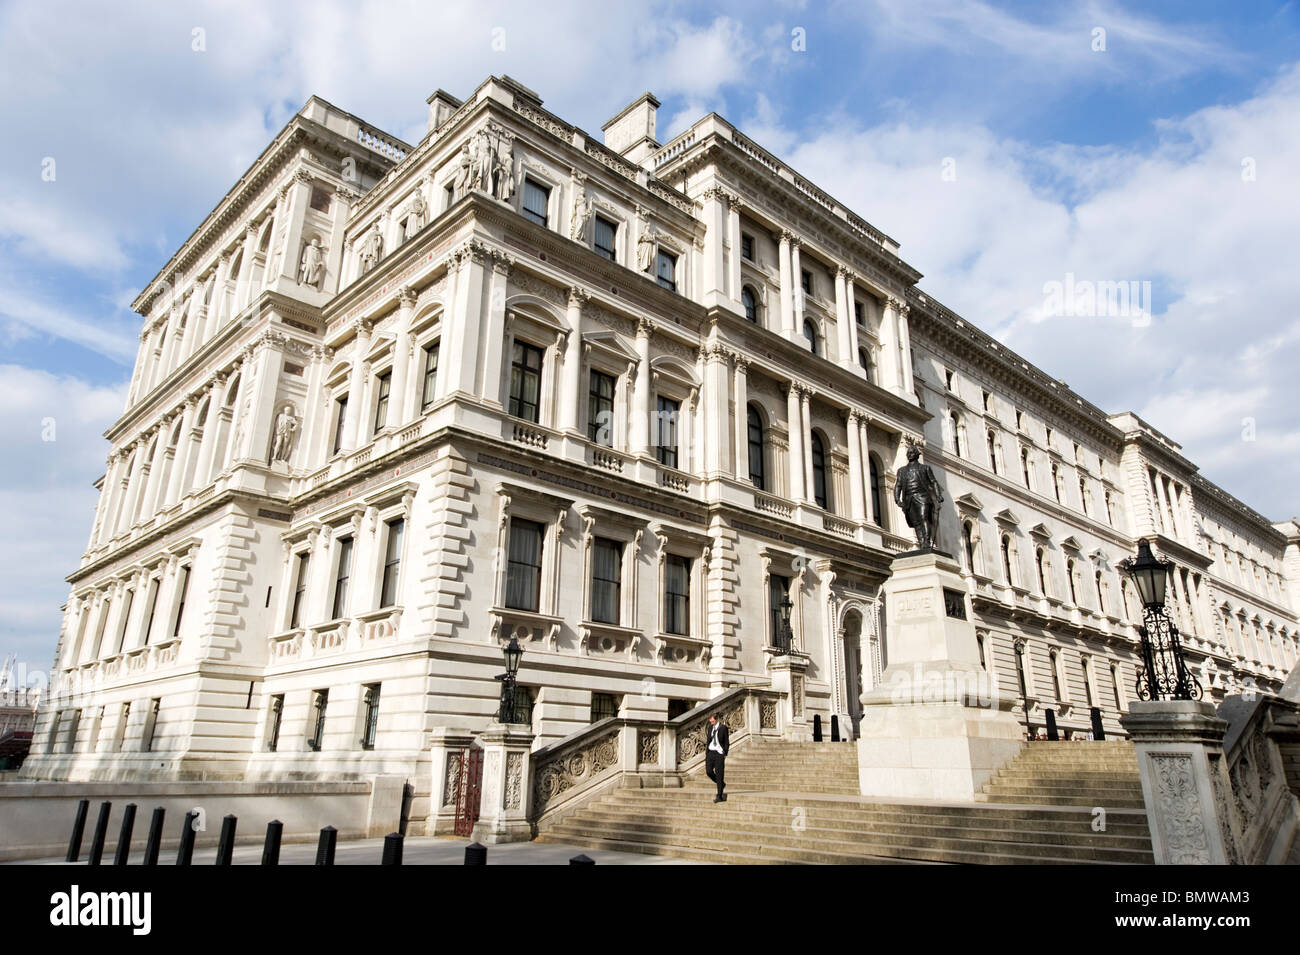 The foreign commonwealth office whitehall london england uk stock photo 30060691 alamy - British foreign commonwealth office ...